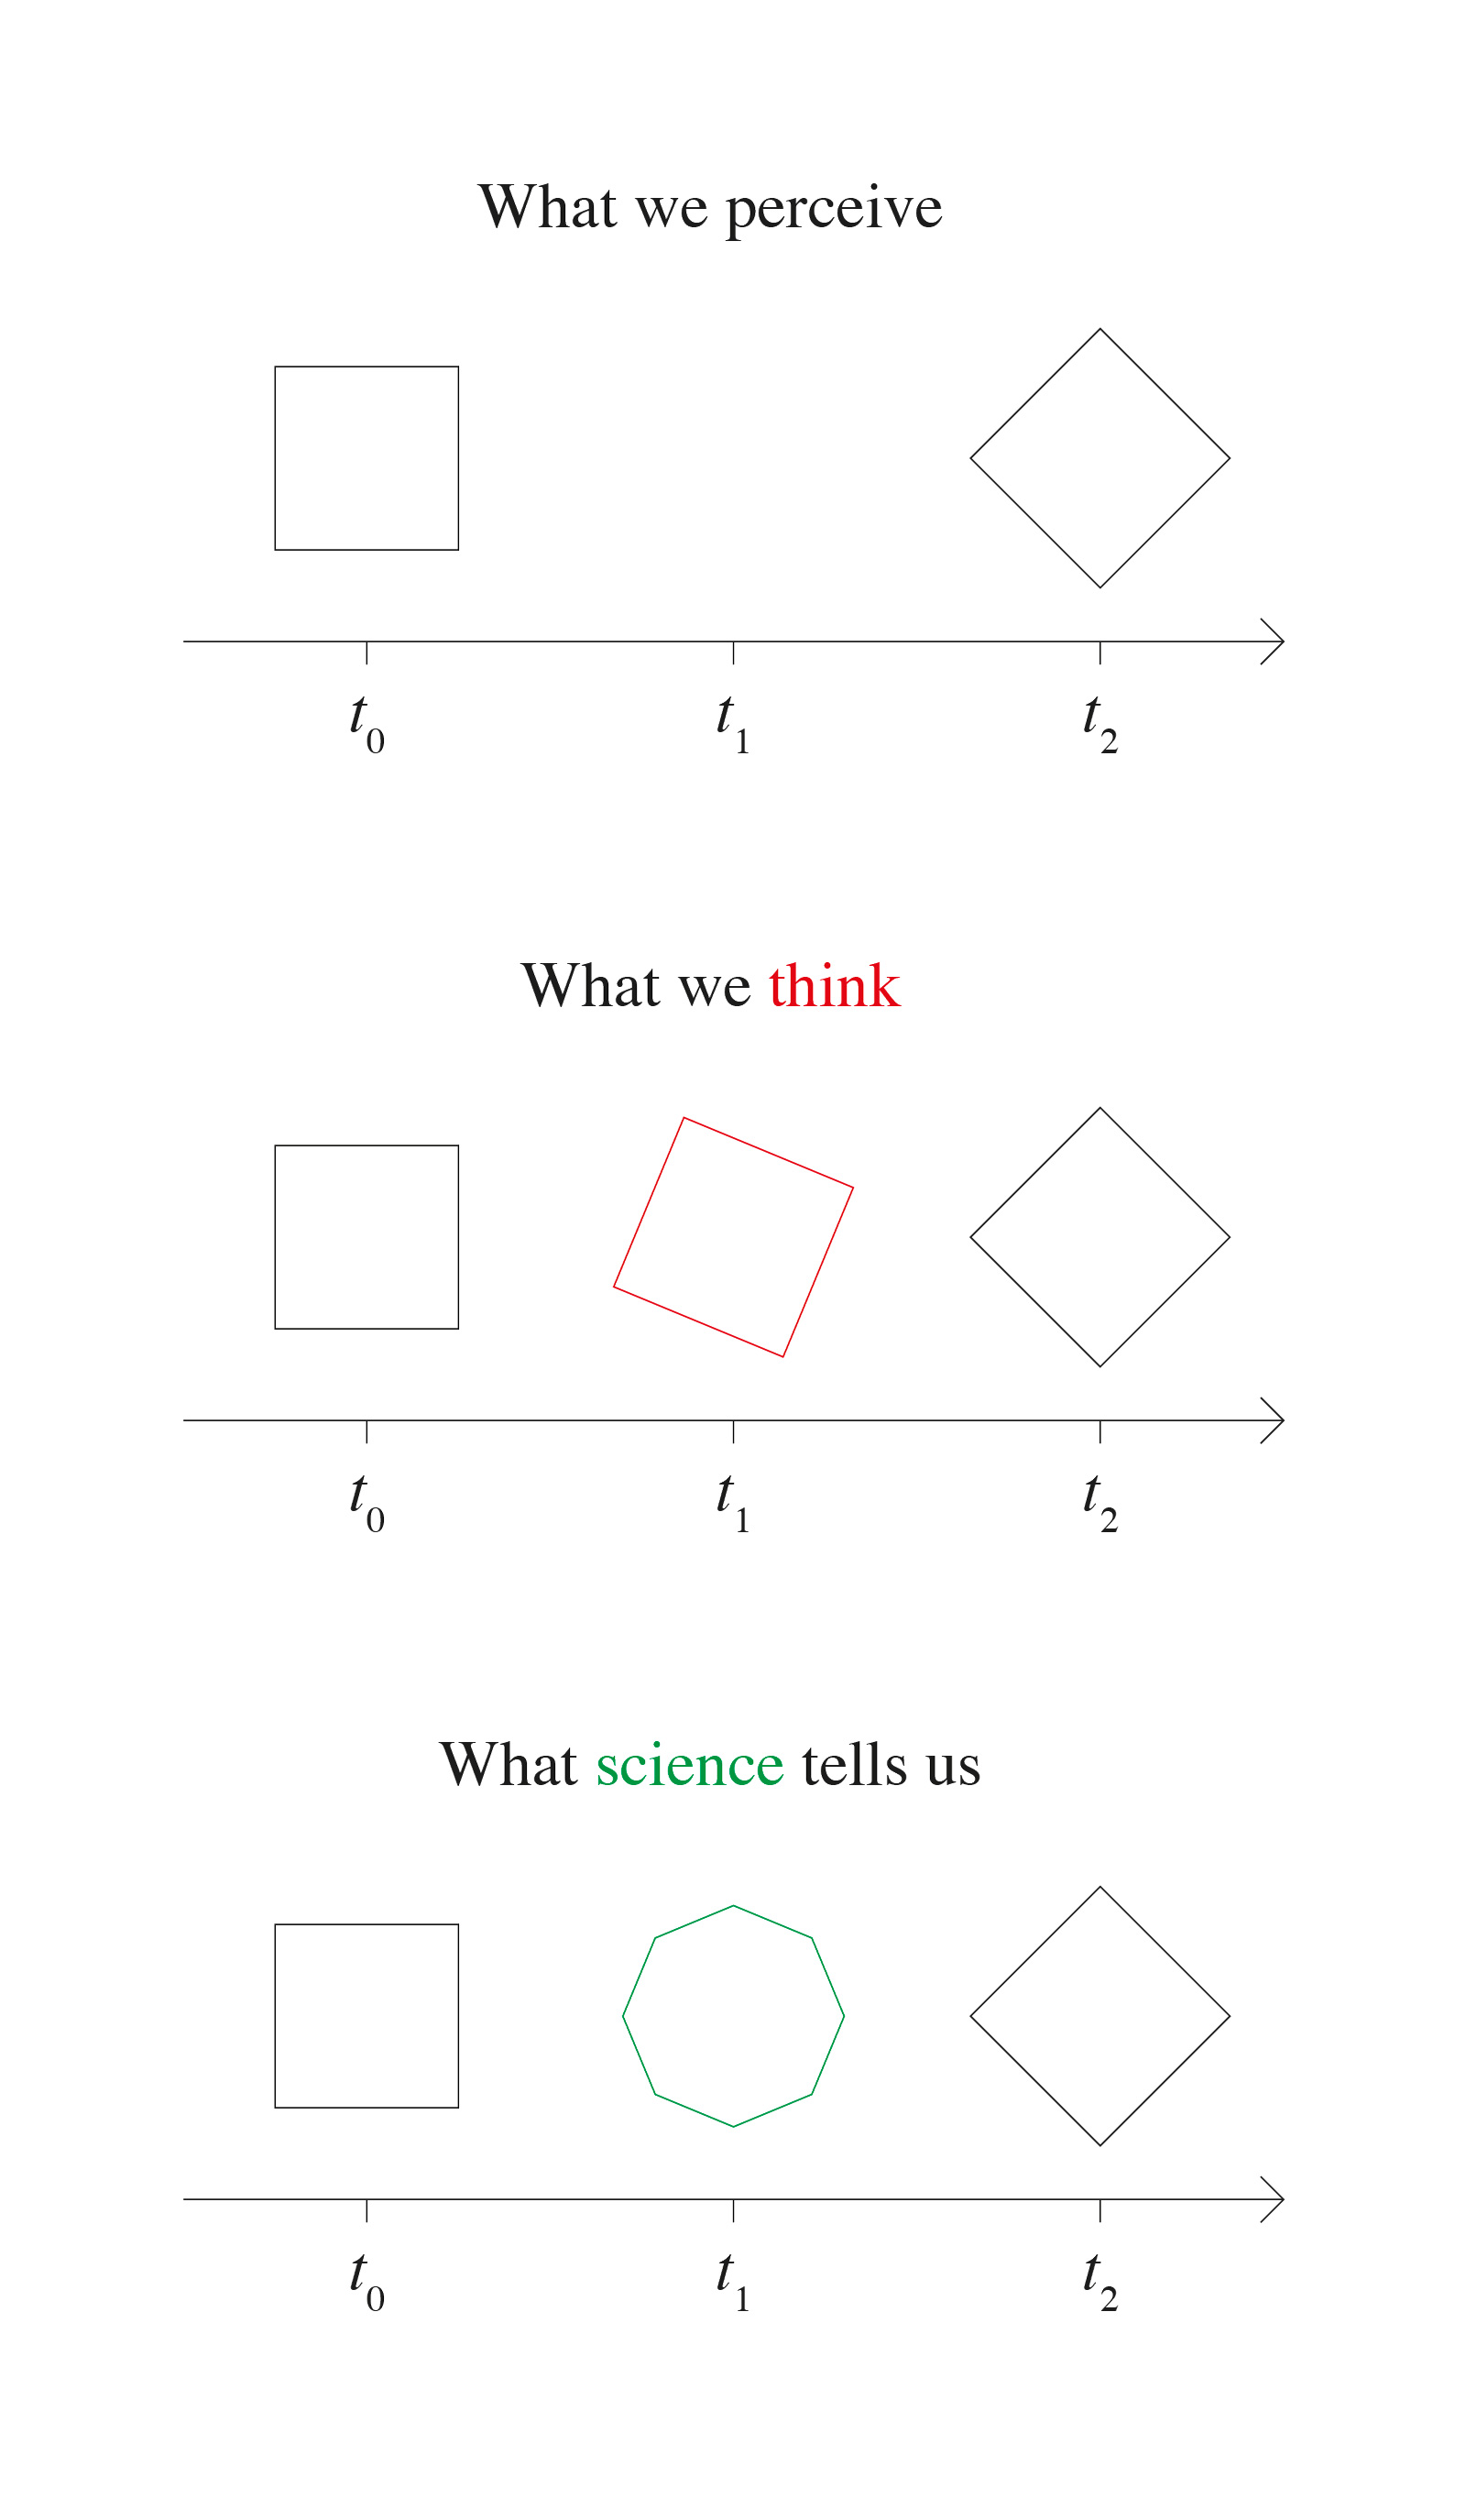 What we perceive / What we think / What science tells us